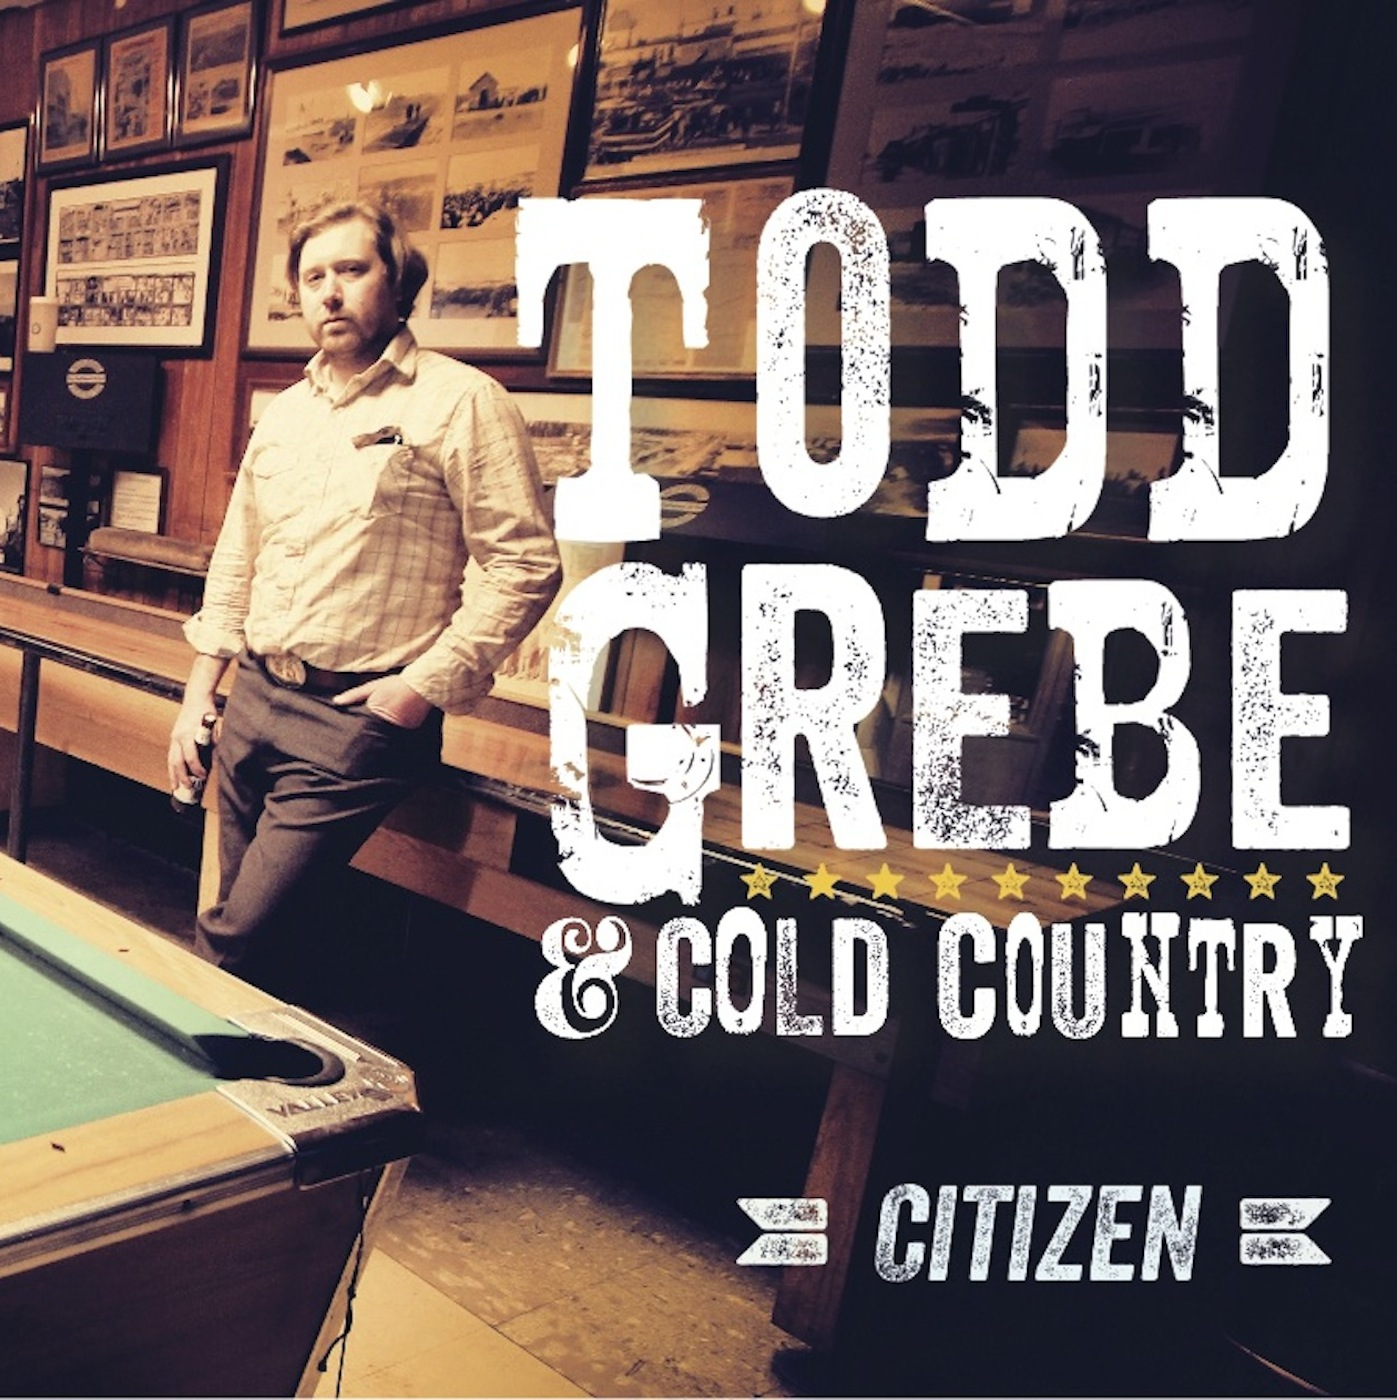 Caption: Citizen by Todd Grebe & Cold Country, Credit: Official Album Cover